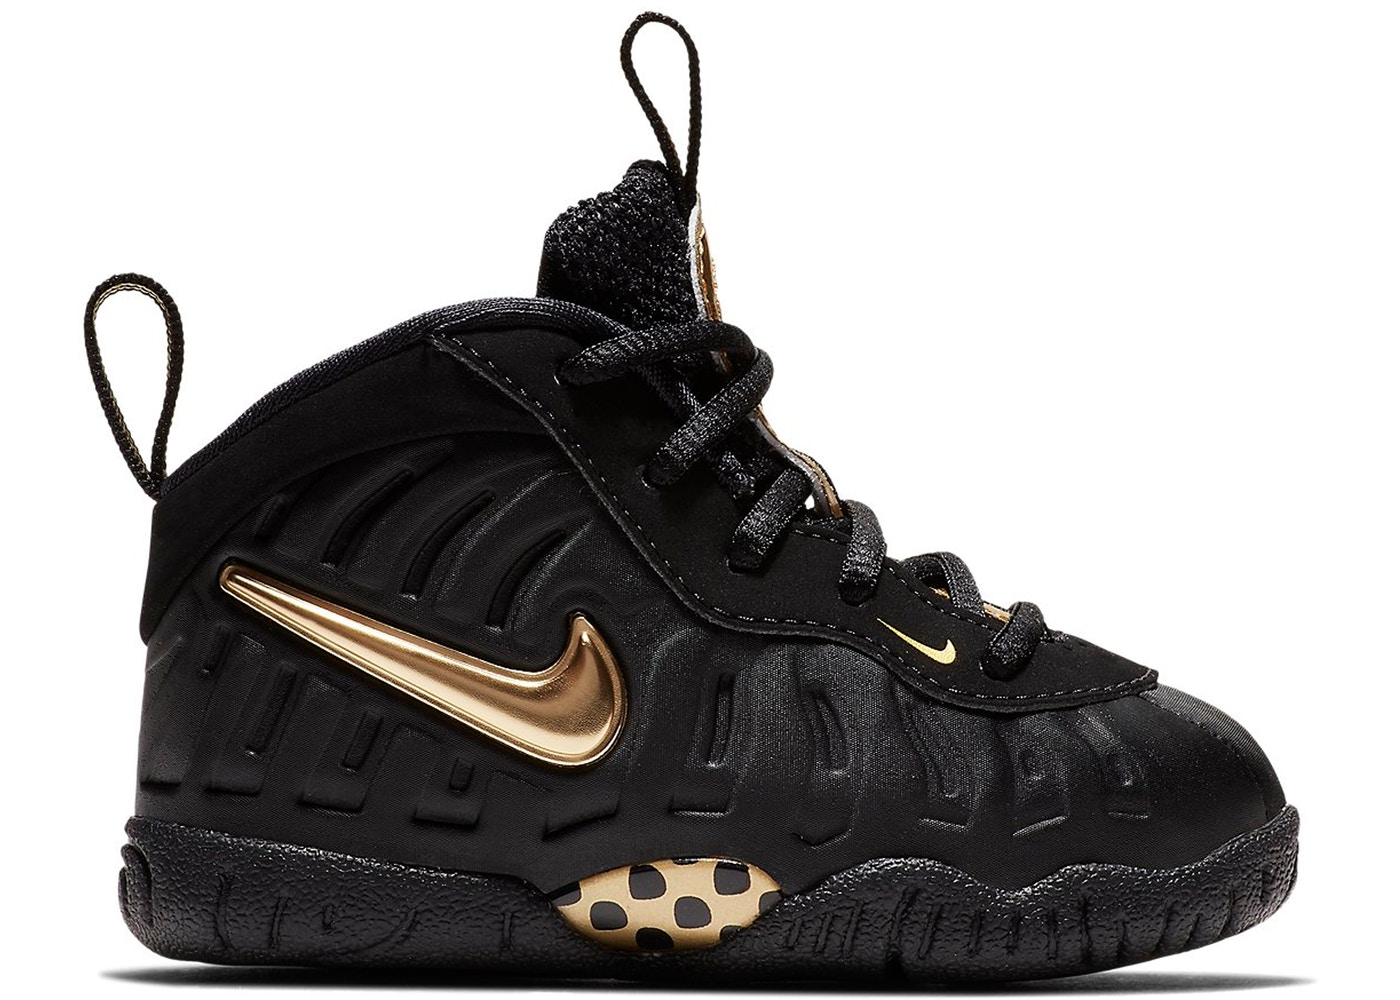 premium selection a2216 ddb9b Air Foamposite Pro Black Metallic Gold (TD)